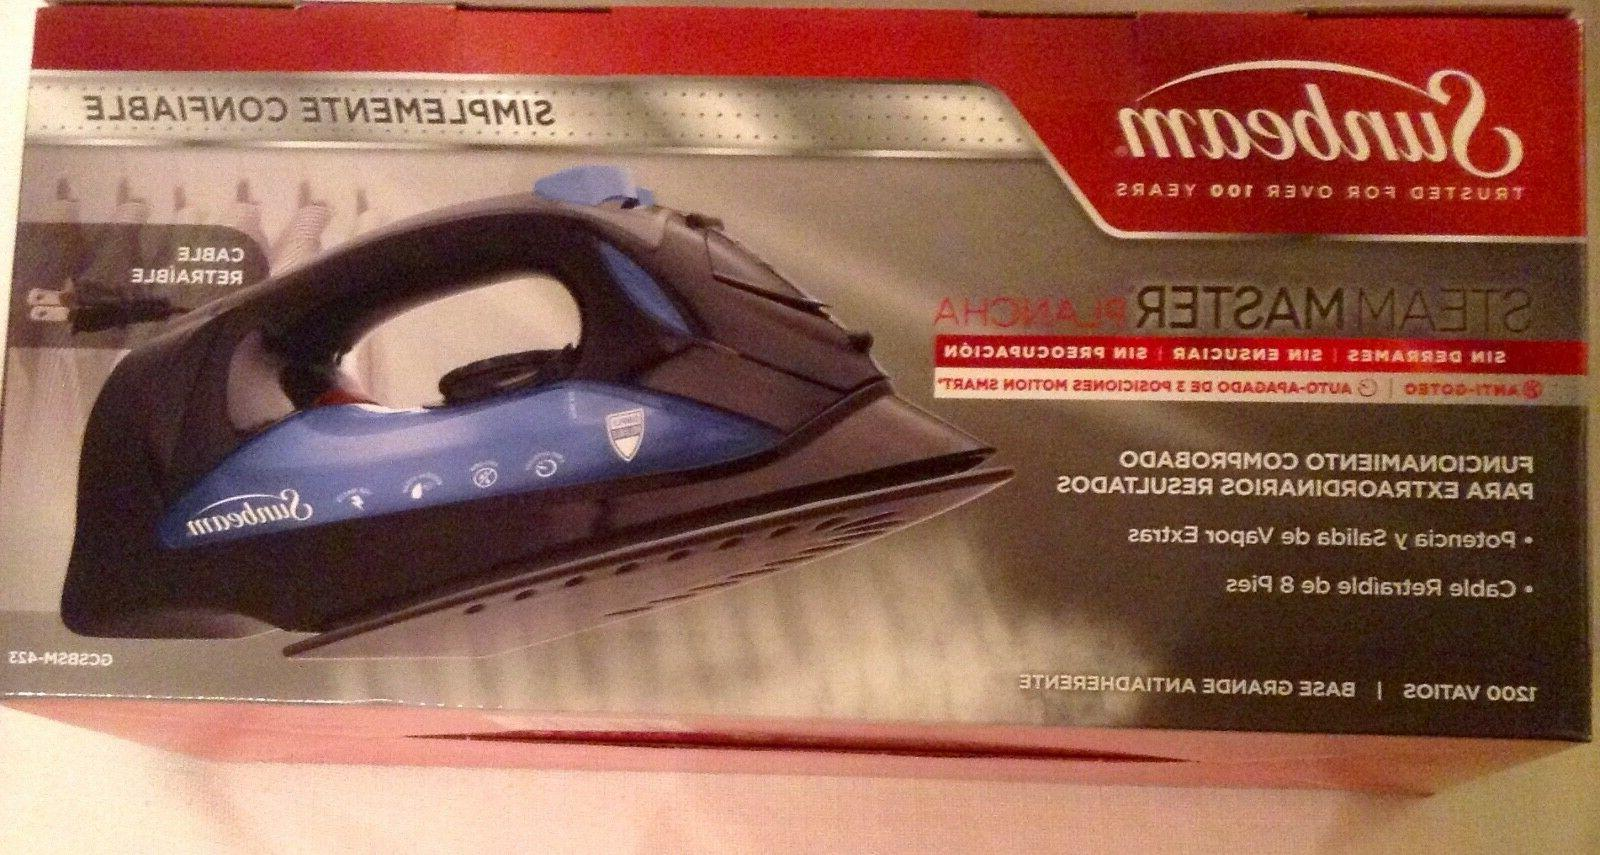 steam master iron w retractable cord black